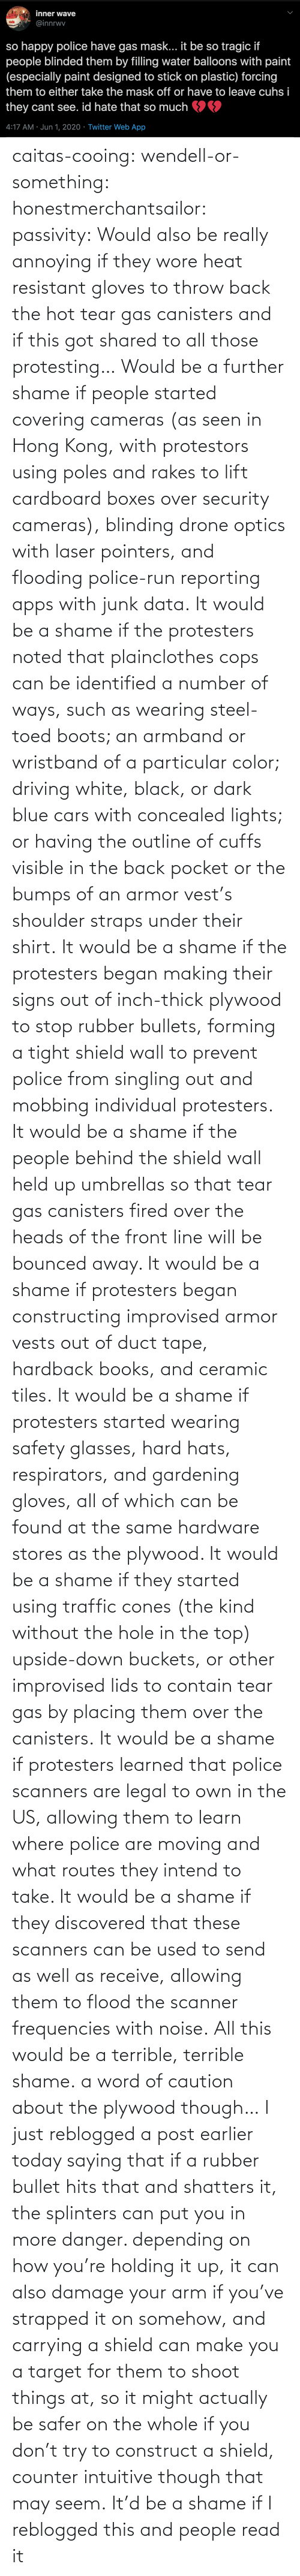 Apps: caitas-cooing:  wendell-or-something: honestmerchantsailor:  passivity: Would also be really annoying if they wore heat resistant gloves to throw back the hot tear gas canisters and if this got shared to all those protesting… Would be a further shame if people started covering cameras (as seen in Hong Kong, with protestors using poles and rakes to lift cardboard boxes over security cameras), blinding drone optics with laser pointers, and flooding police-run reporting apps with junk data. It would be a shame if the protesters noted that plainclothes cops can be identified a number of ways, such as wearing steel-toed boots; an armband or wristband of a particular color; driving white, black, or dark blue cars with concealed lights; or having the outline of cuffs visible in the back pocket or the bumps of an armor vest's shoulder straps under their shirt. It would be a shame if the protesters began making their signs out of inch-thick plywood to stop rubber bullets, forming a tight shield wall to prevent police from singling out and mobbing individual protesters. It would be a shame if the people behind the shield wall held up umbrellas so that tear gas canisters fired over the heads of the front line will be bounced away. It would be a shame if protesters began constructing improvised armor vests out of duct tape, hardback books, and ceramic tiles. It would be a shame if protesters started wearing safety glasses, hard hats, respirators, and gardening gloves, all of which can be found at the same hardware stores as the plywood. It would be a shame if they started using traffic cones (the kind without the hole in the top) upside-down buckets, or other improvised lids to contain tear gas by placing them over the canisters. It would be a shame if protesters learned that police scanners are legal to own in the US, allowing them to learn where police are moving and what routes they intend to take. It would be a shame if they discovered that these scanners can be used to send as well as receive, allowing them to flood the scanner frequencies with noise. All this would be a terrible, terrible shame.    a word of caution about the plywood though… I just reblogged a post earlier today saying that if a rubber bullet hits that and shatters it, the splinters can put you in more danger. depending on how you're holding it up, it can also damage your arm if you've strapped it on somehow, and carrying a shield can make you a target for them to shoot things at, so it might actually be safer on the whole if you don't try to construct a shield, counter intuitive though that may seem.    It'd be a shame if I reblogged this and people read it